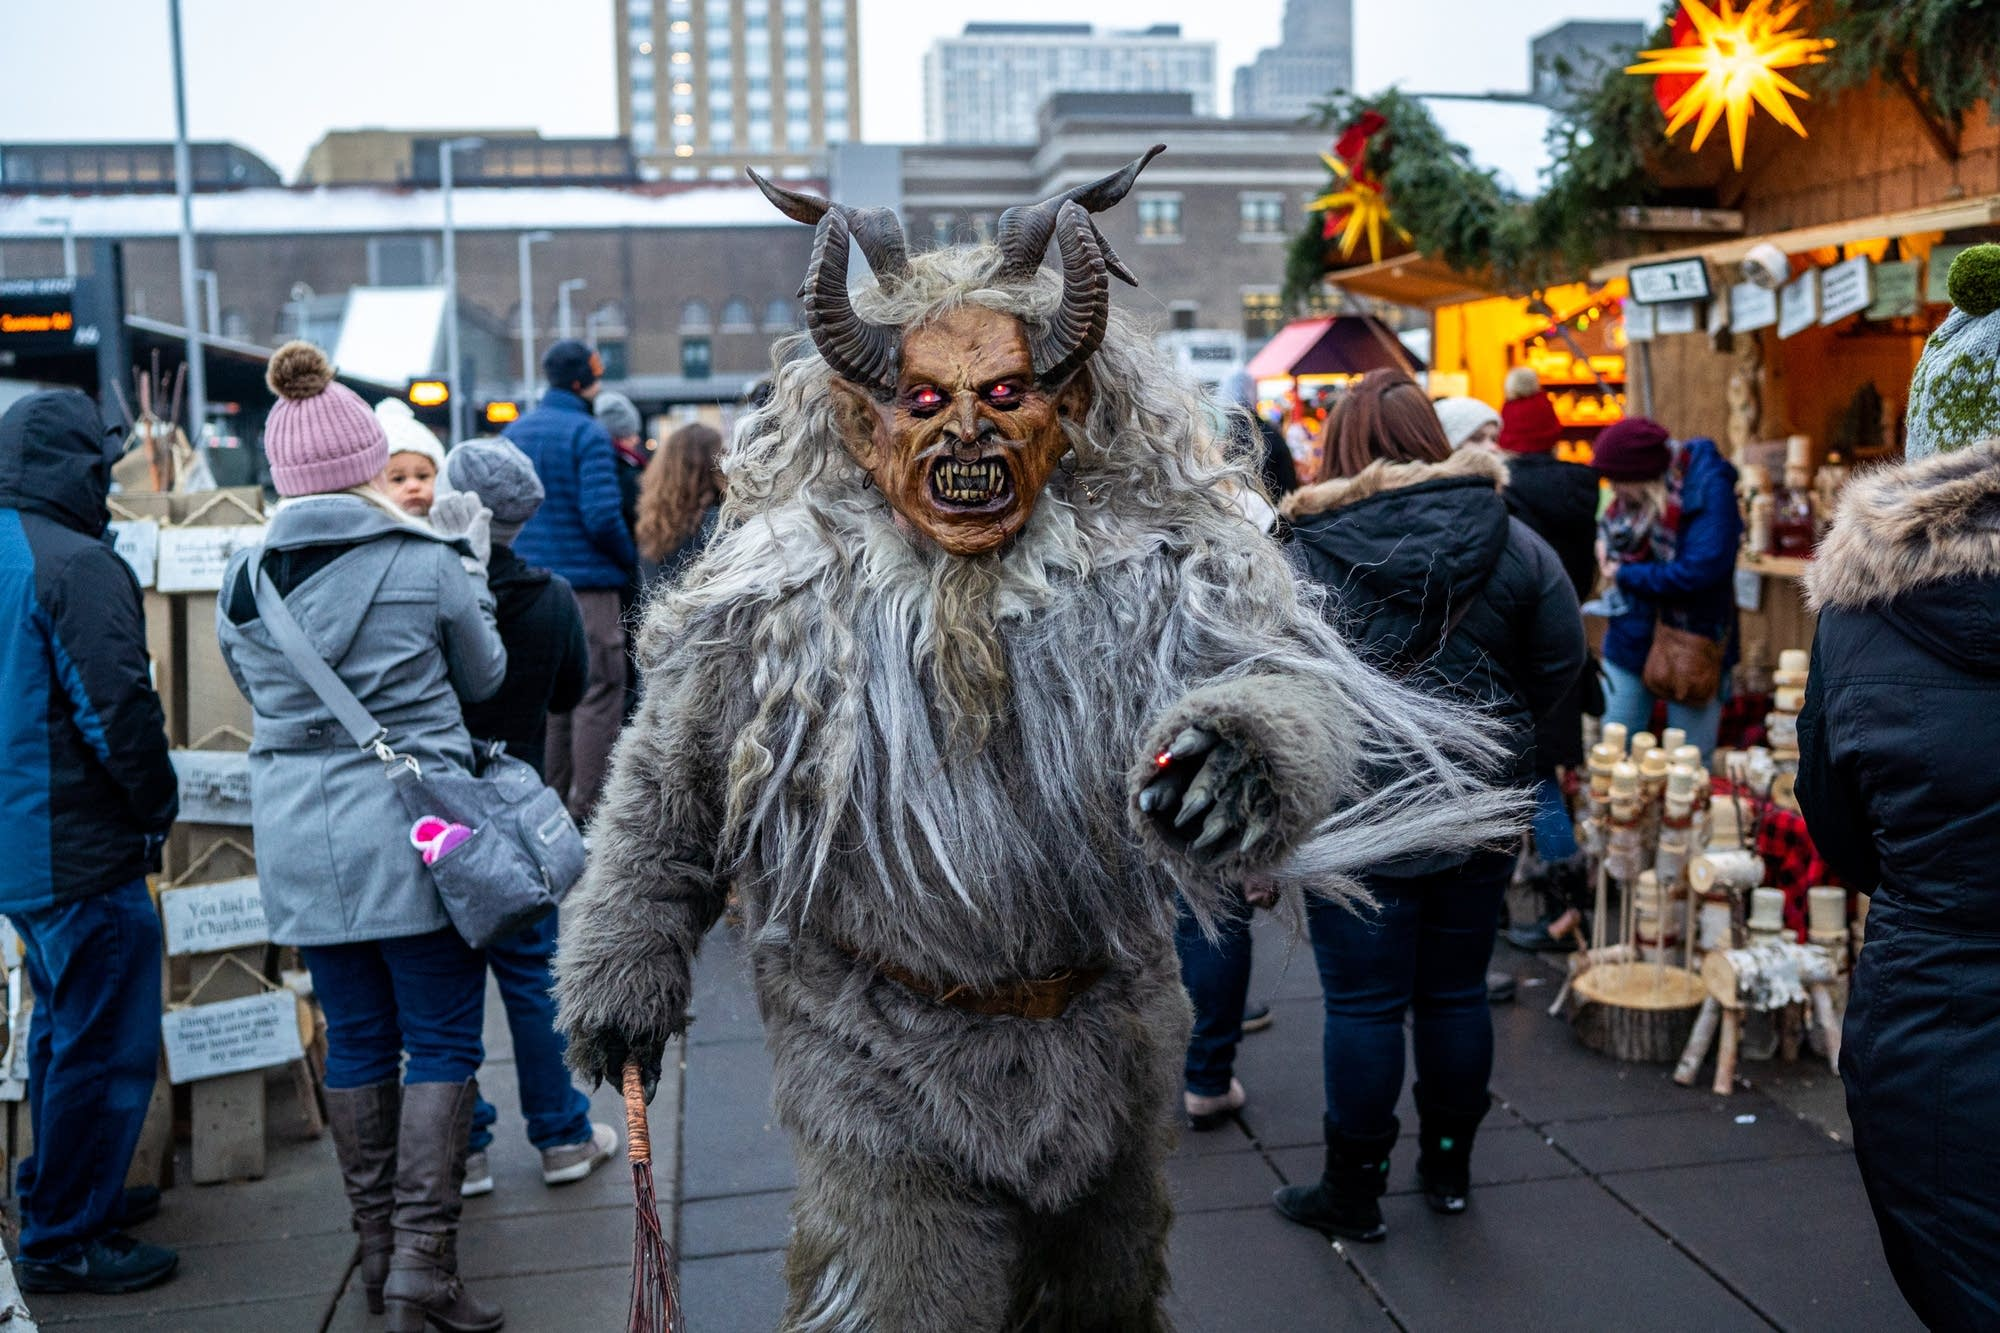 Ross Otto dressed at Krampus, patrols the Christmas Market.